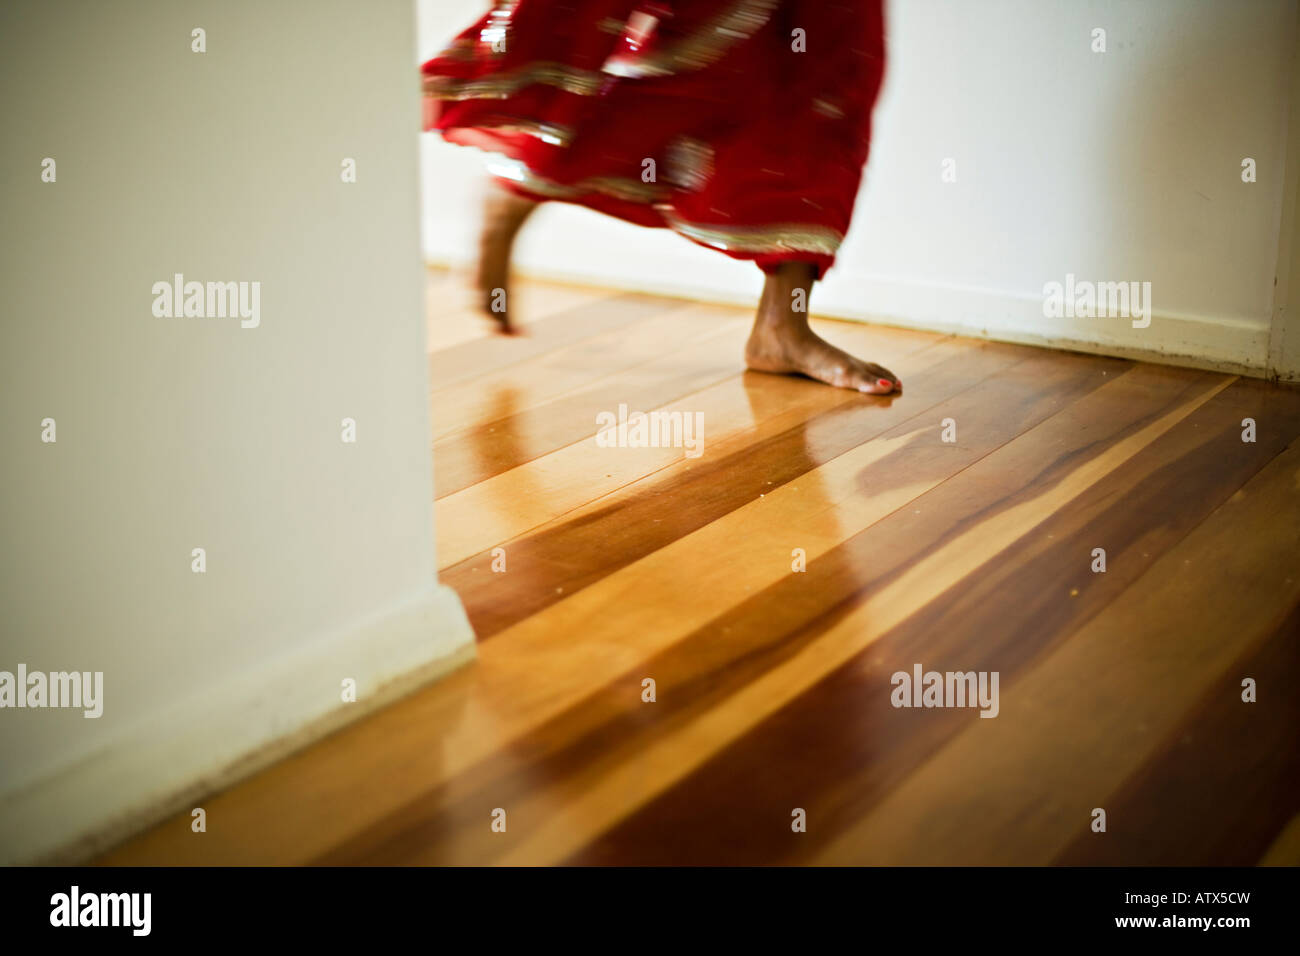 Feet of a woman in red sari - Stock Image